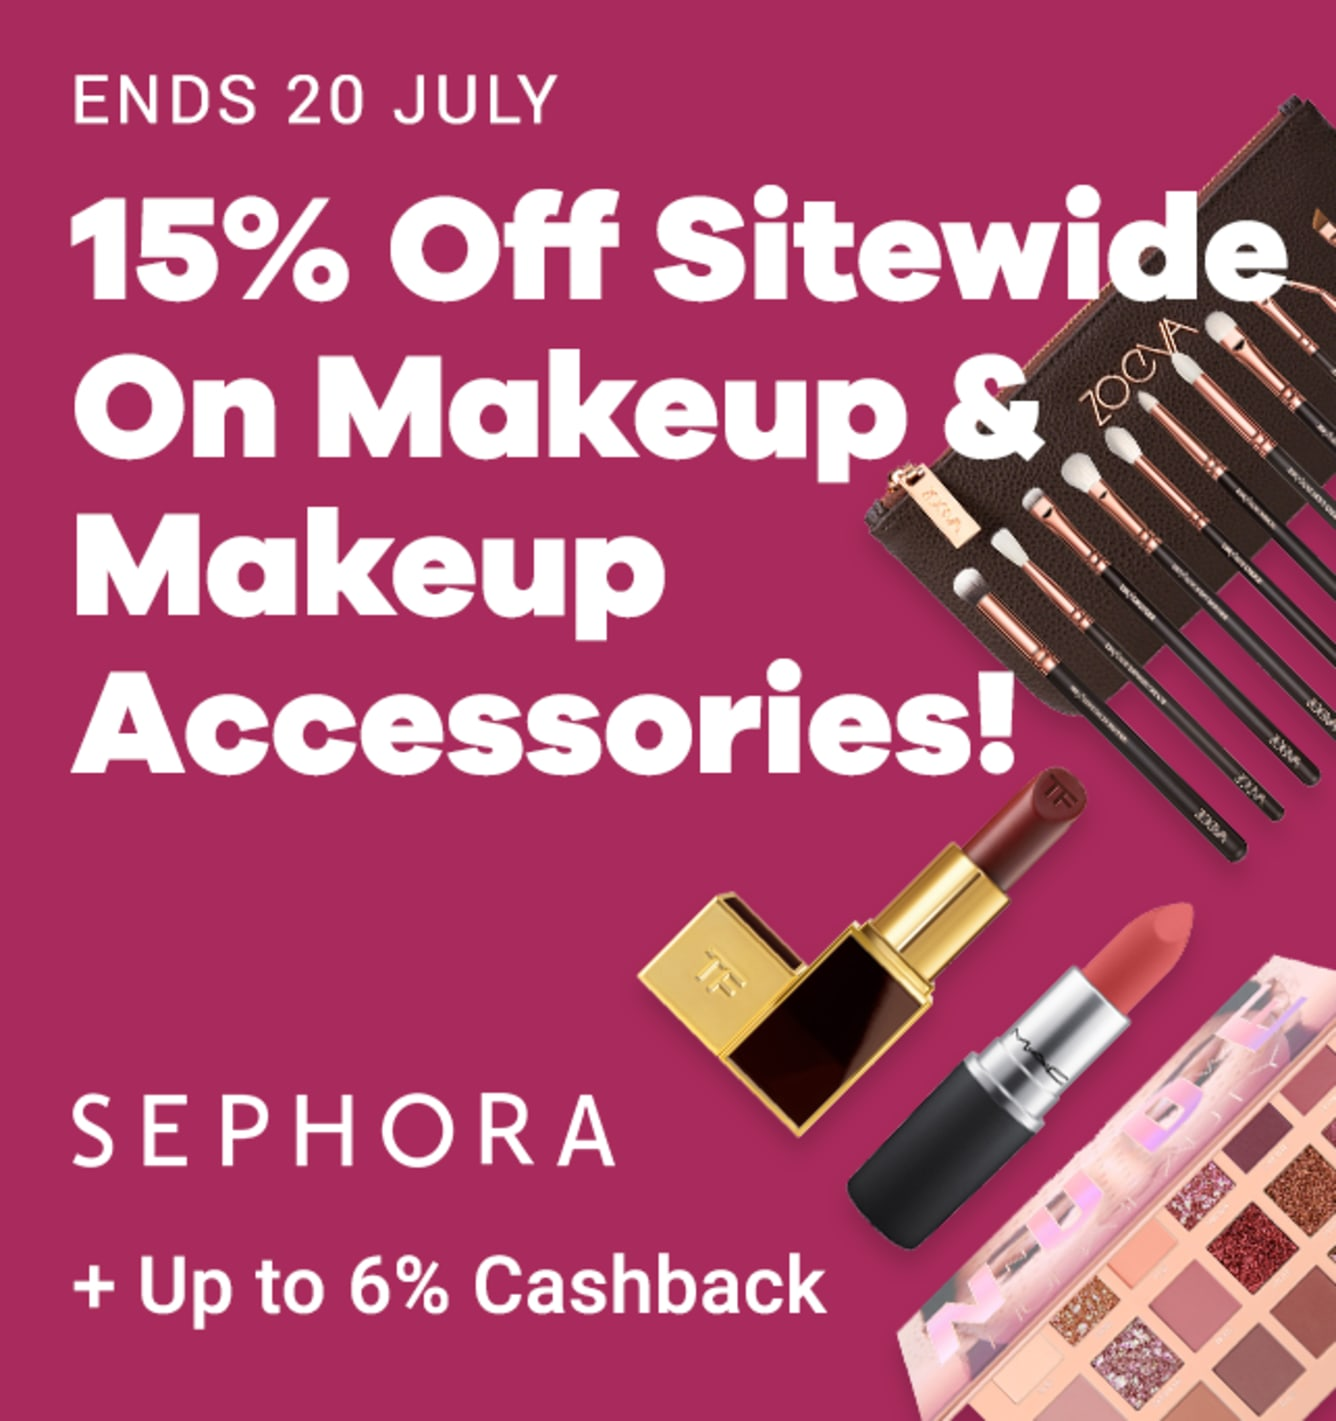 Sephora 15% Off Makeup Sale + Up to 6% Cashback